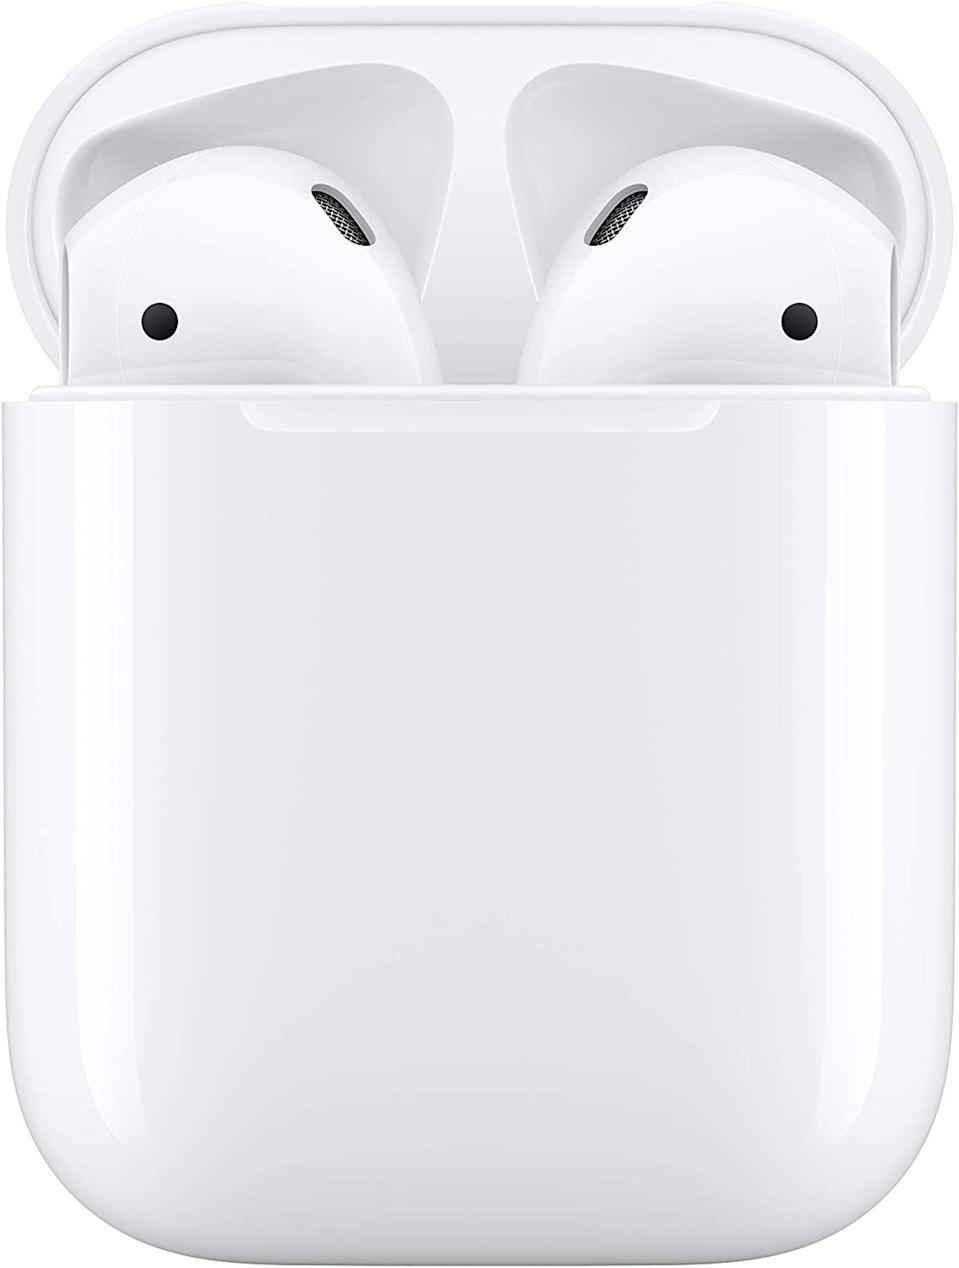 "<br><br><strong>Apple</strong> Apple AirPods with Charging Case, $, available at <a href=""https://www.amazon.com/Apple-AirPods-Charging-Latest-Model/dp/B07PXGQC1Q"" rel=""nofollow noopener"" target=""_blank"" data-ylk=""slk:Amazon"" class=""link rapid-noclick-resp"">Amazon</a>"